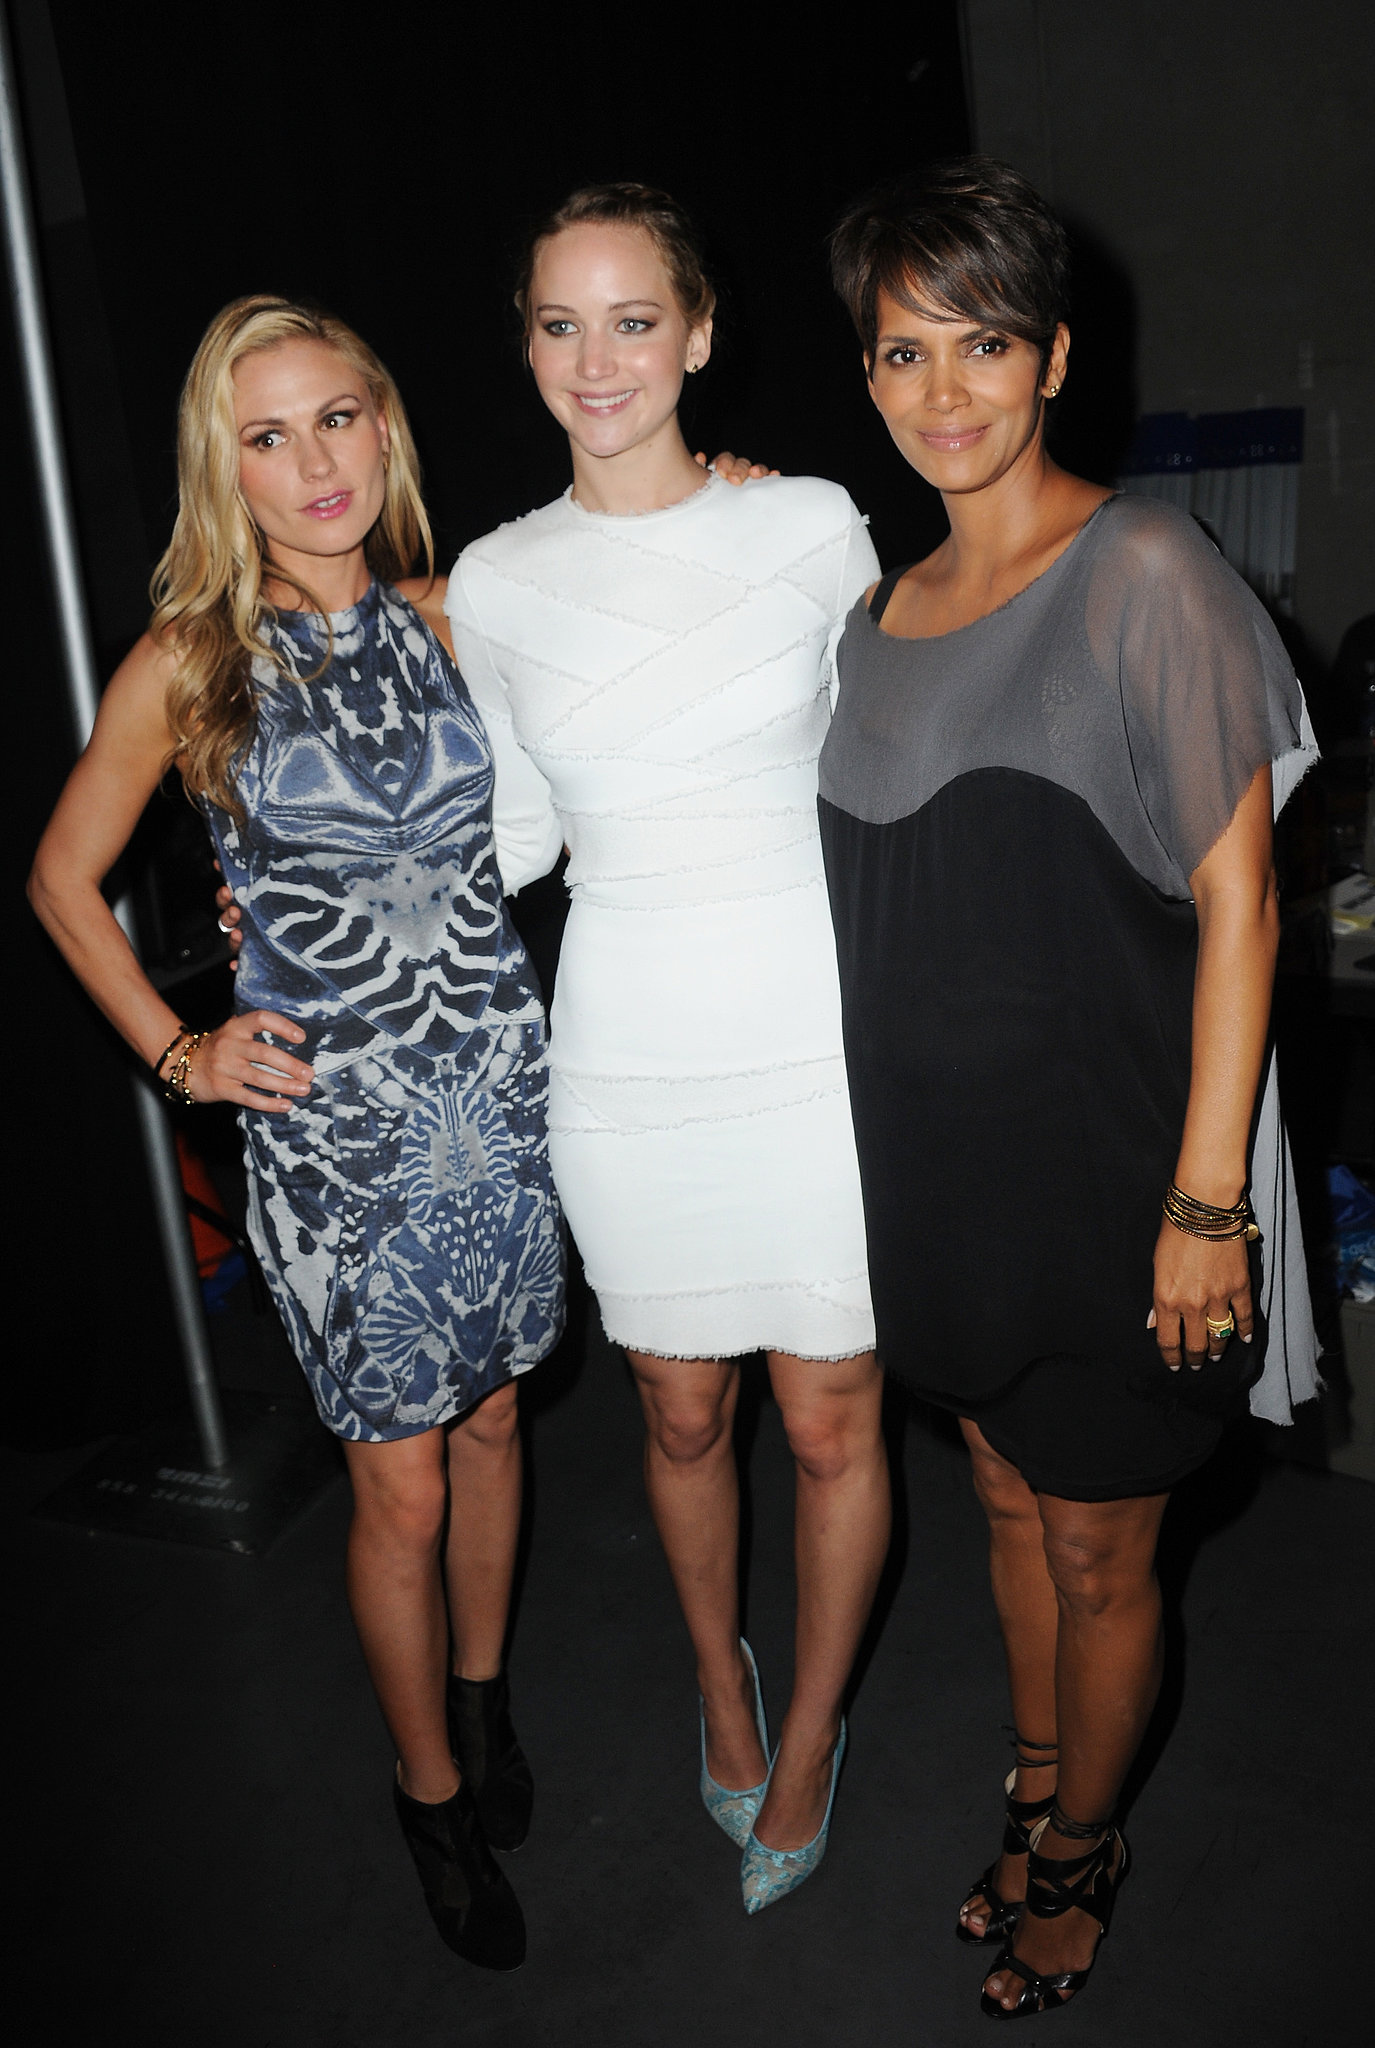 Talk about a stylish trio. Anna Paquin, Jennifer Lawrence, and Halle Berry all attended a panel for their film, X-Men: Days of Future Past. Lawrence wore a pair of Nicholas Kirkwood heels and jewelry from EF Collection with her Alexander McQueen sheath.